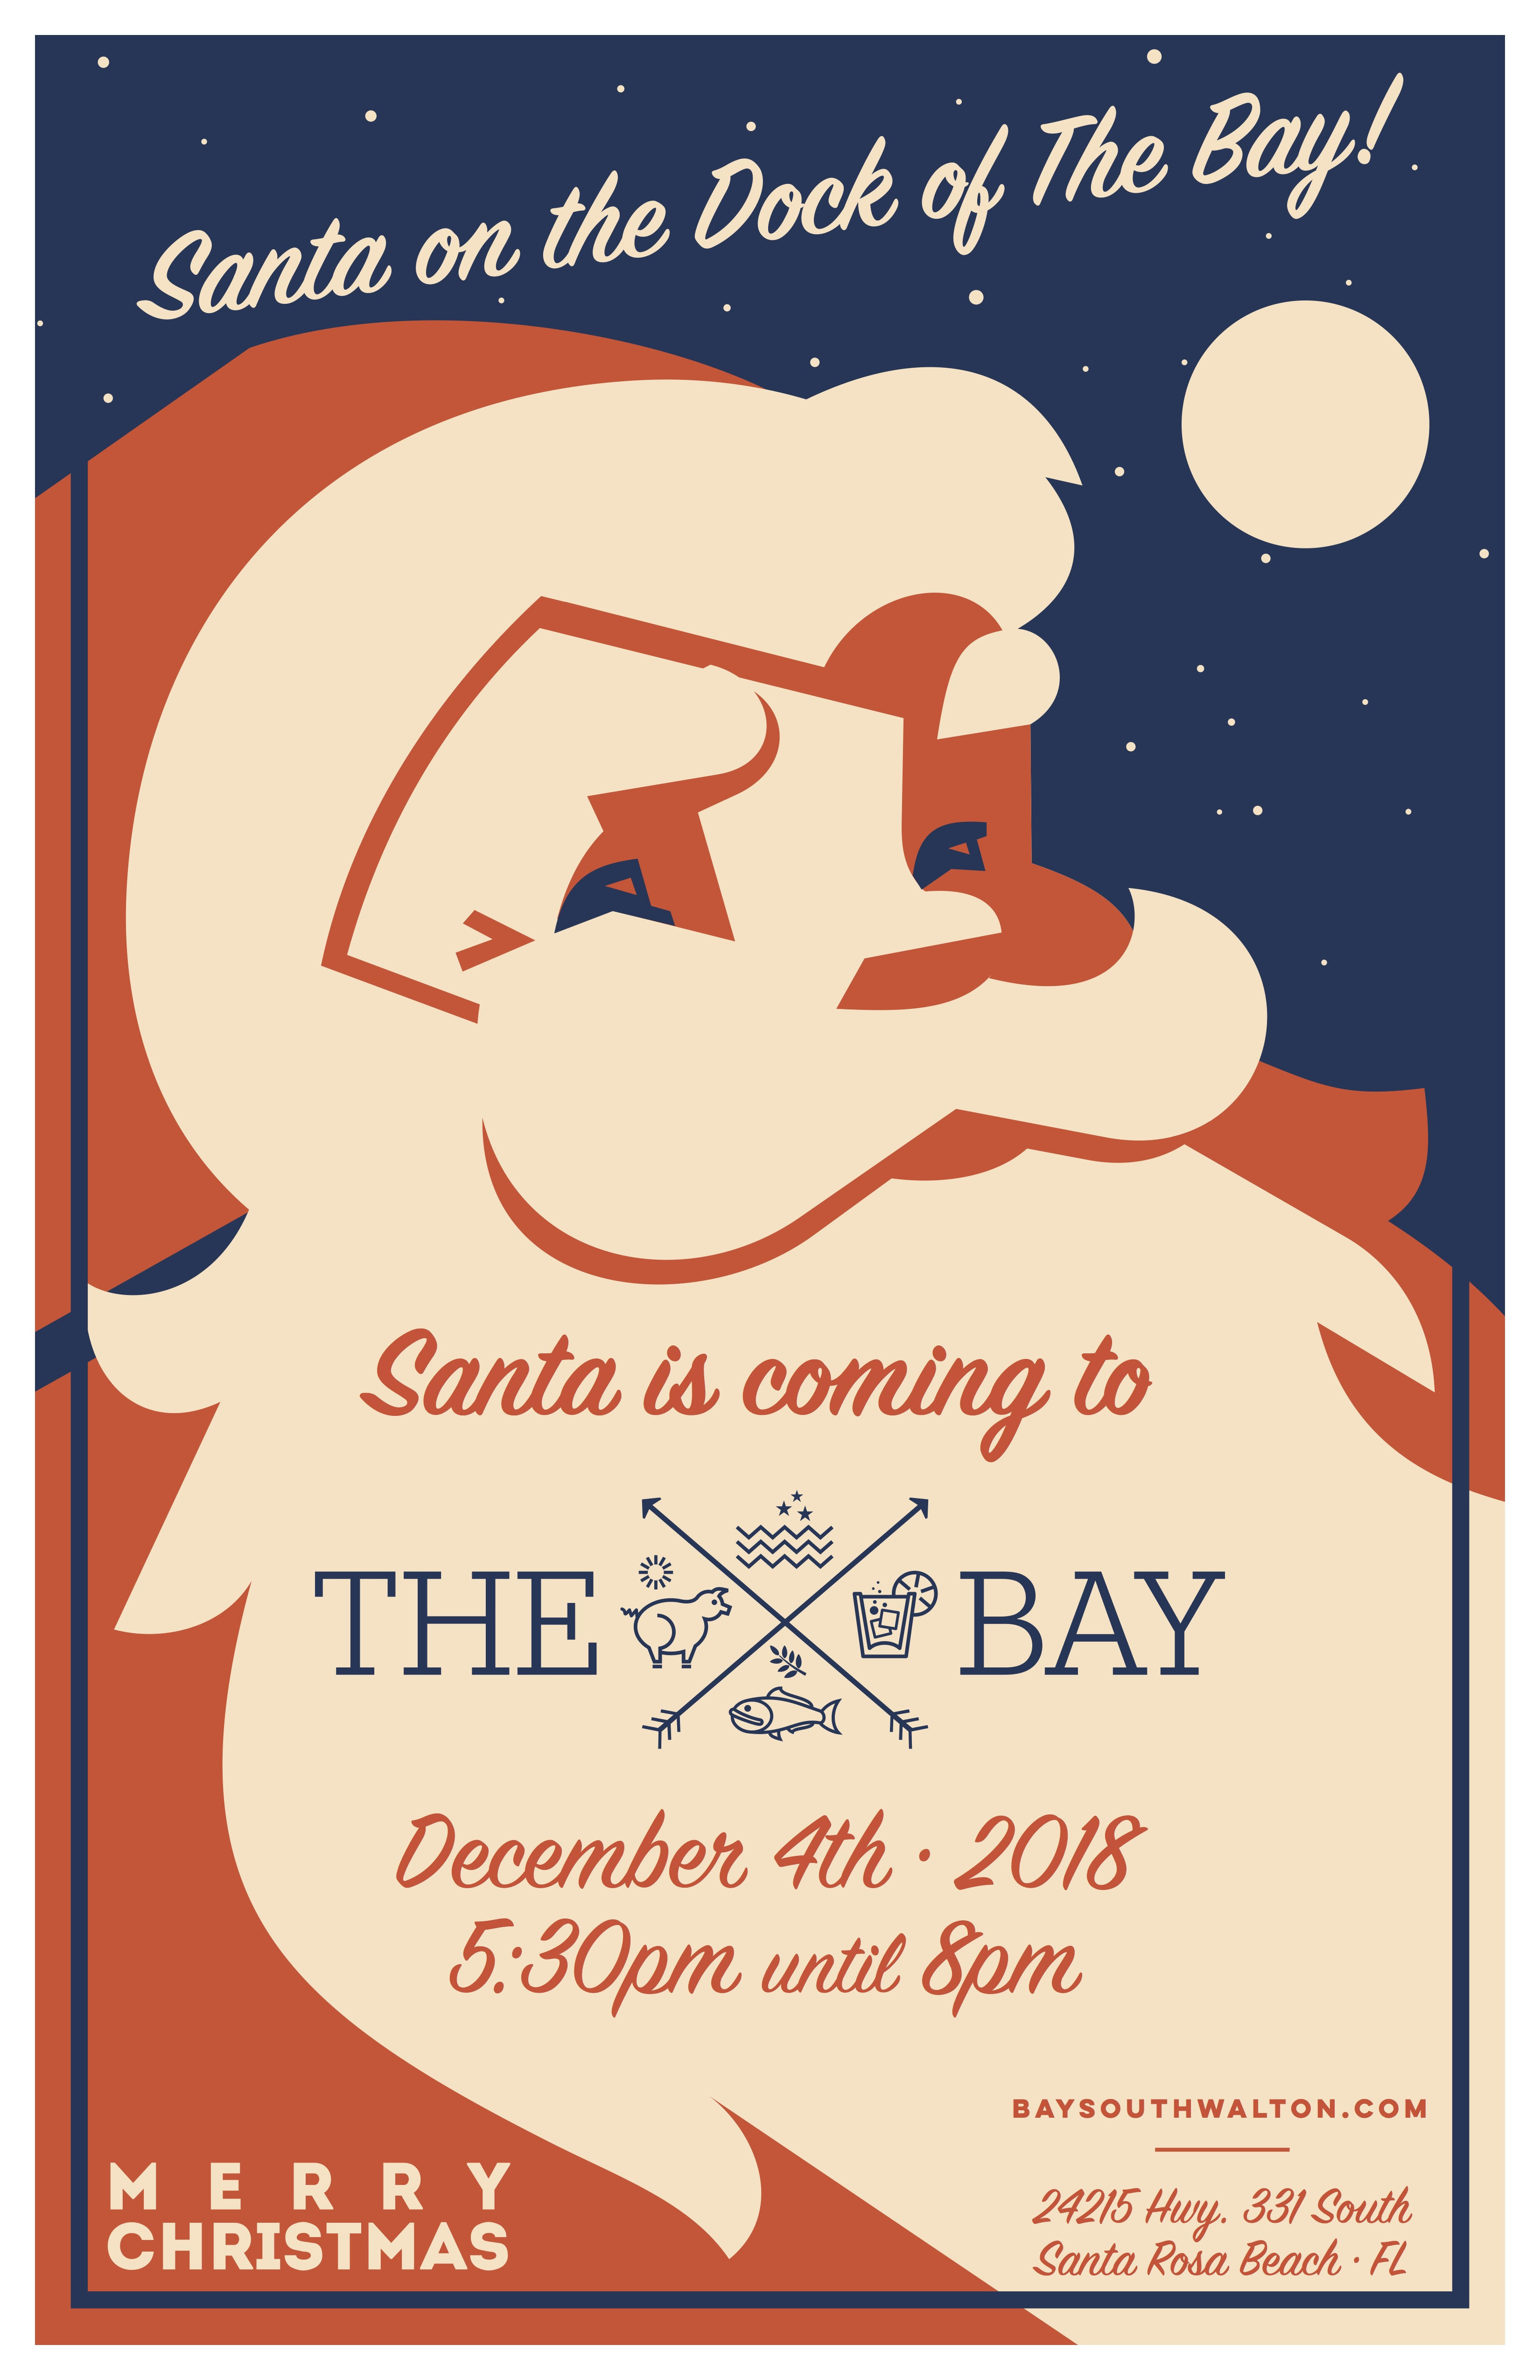 Santa on the Dock of the The Bay